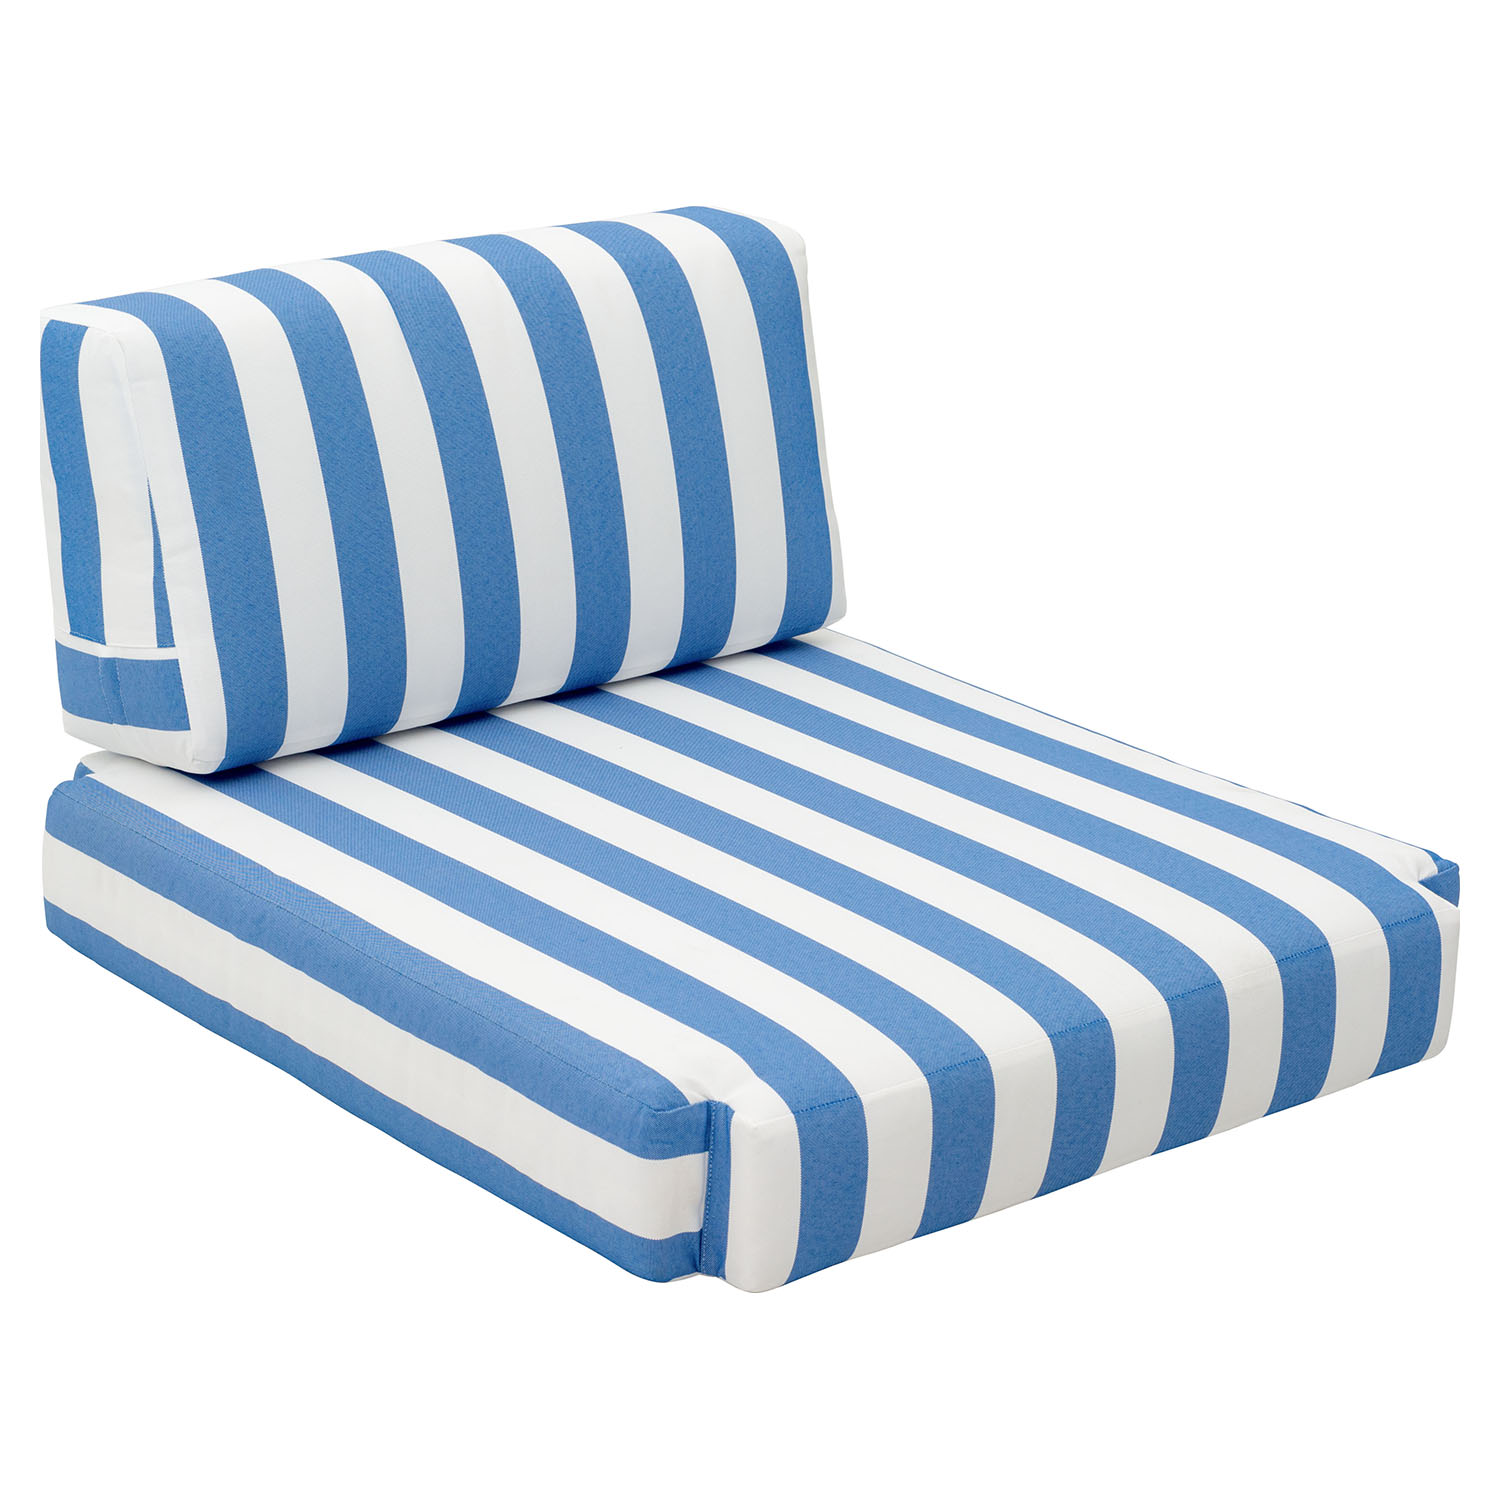 bilander arm chair cushion blue and white dcg stores